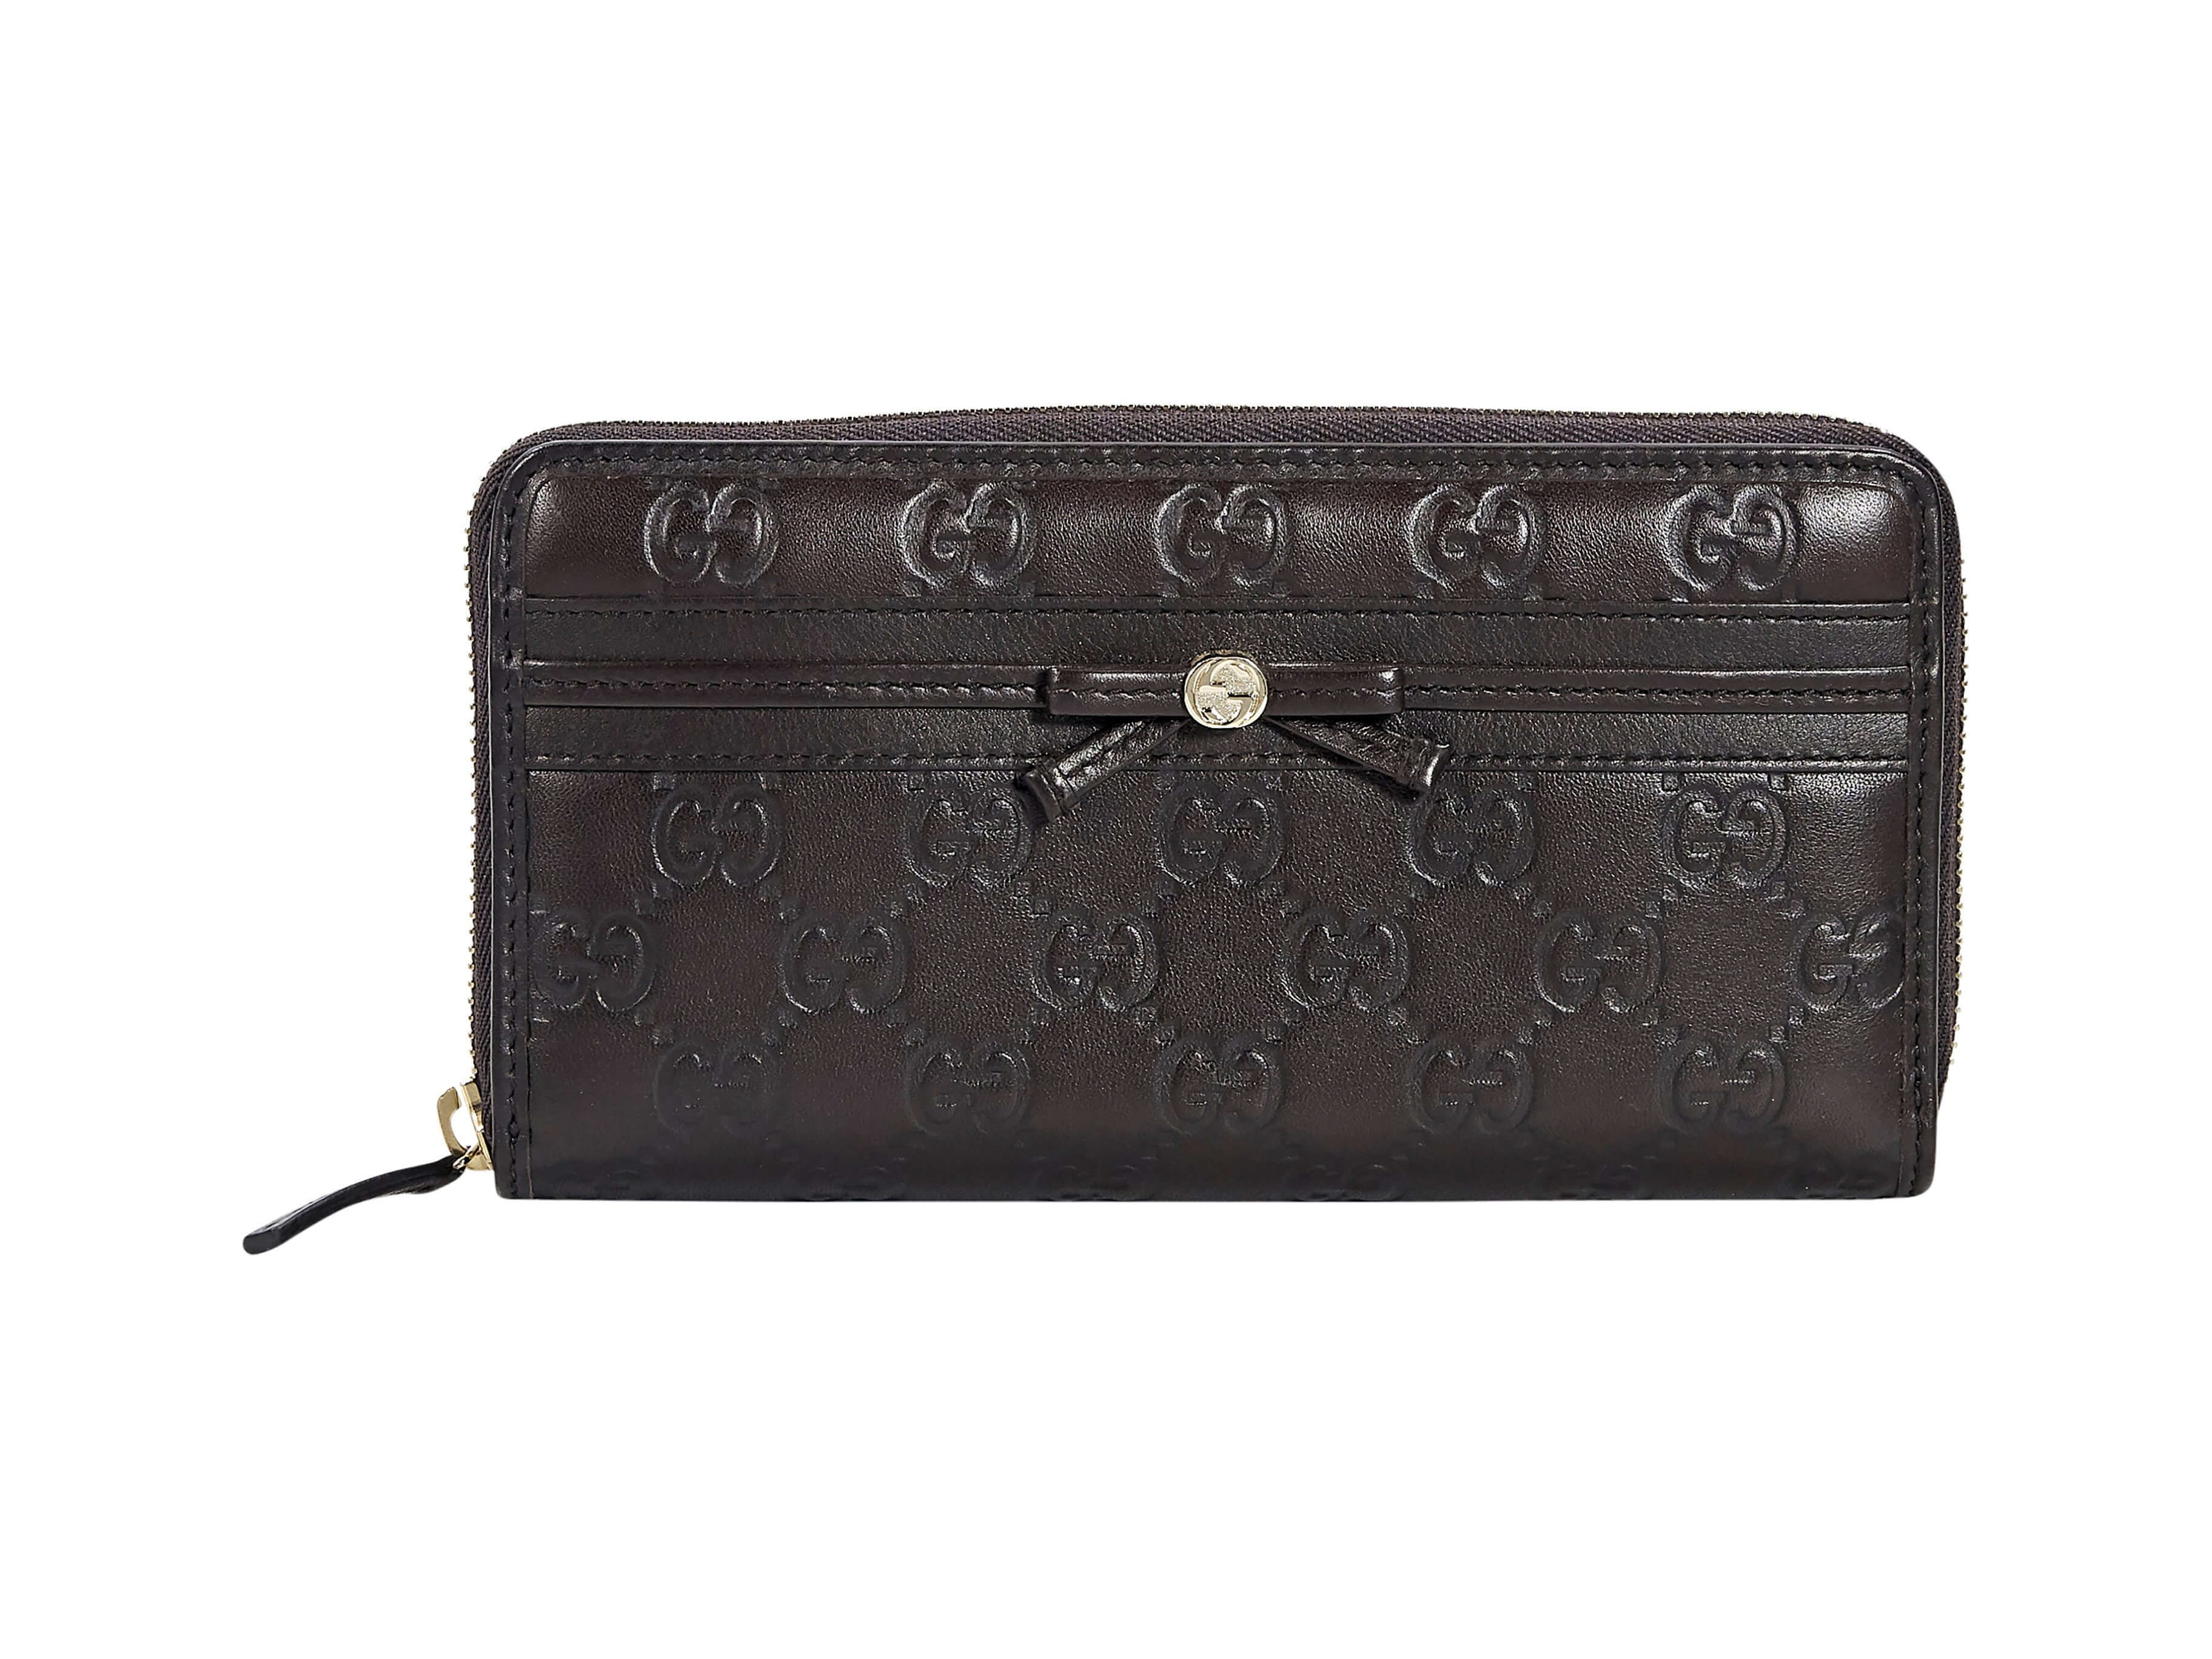 803d0f2bd2e Brown Gucci Embossed Leather Wallet - Brown